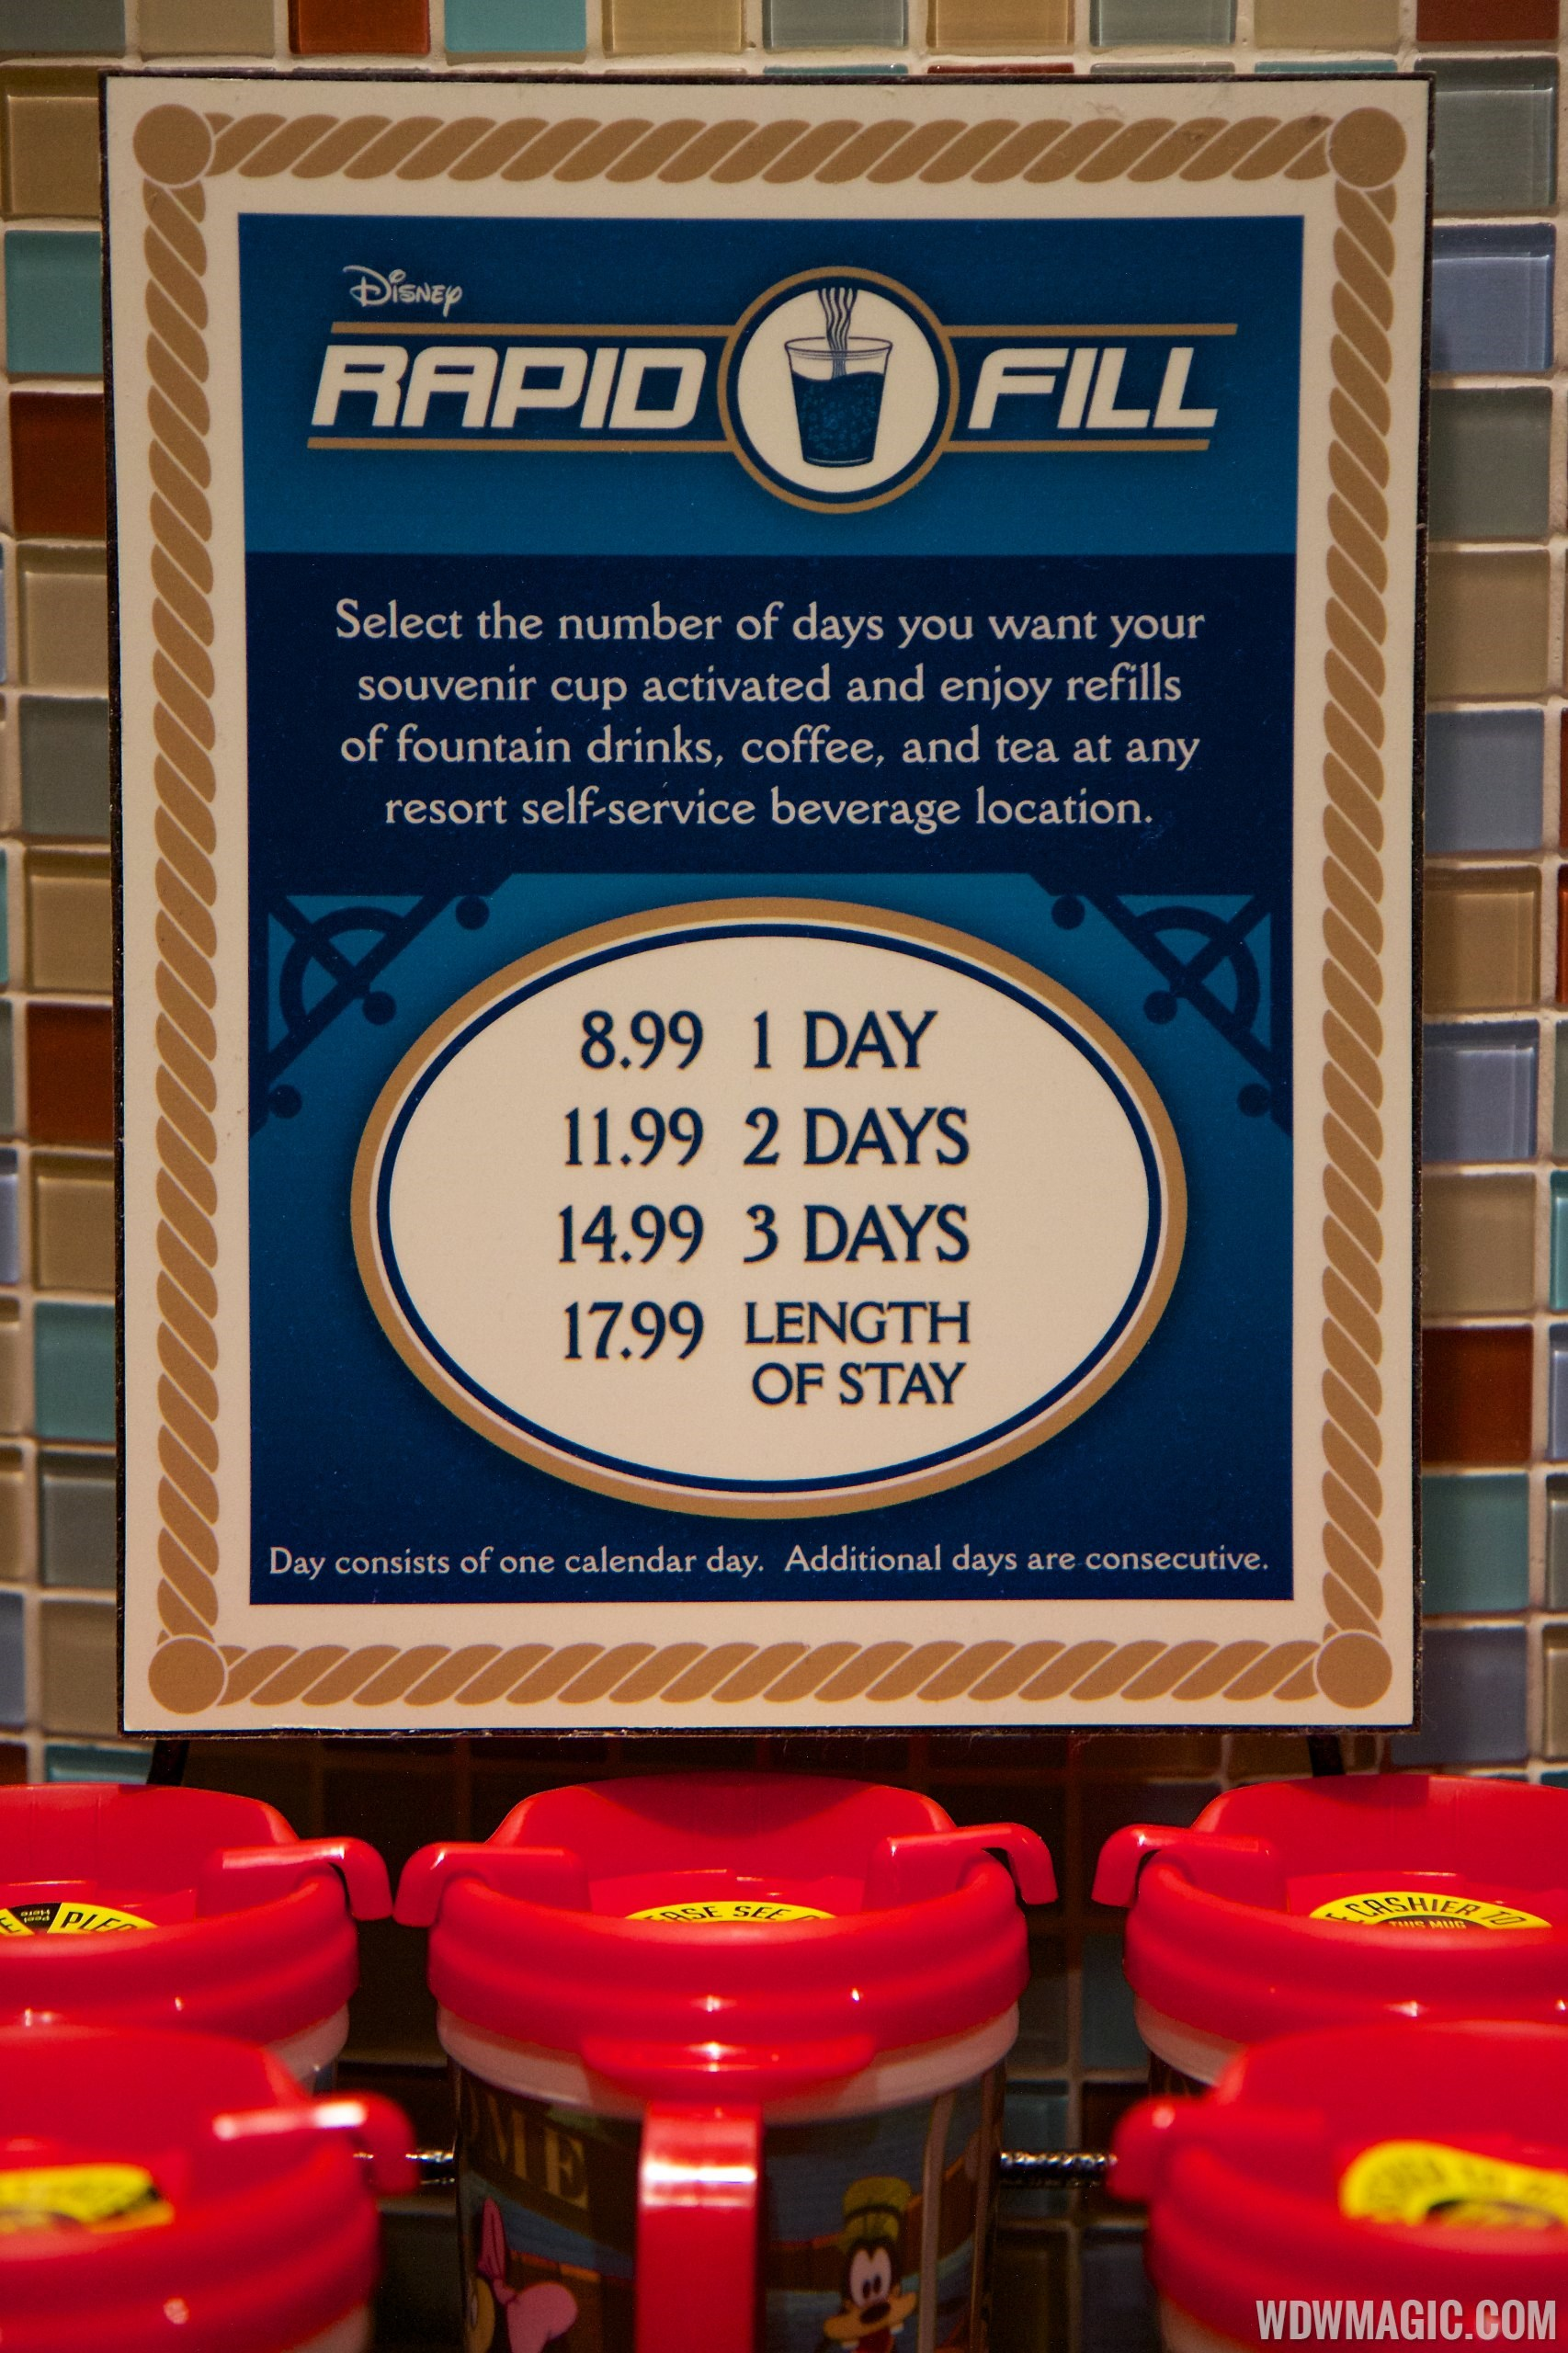 Rapid Fill Refillable Mug 2014